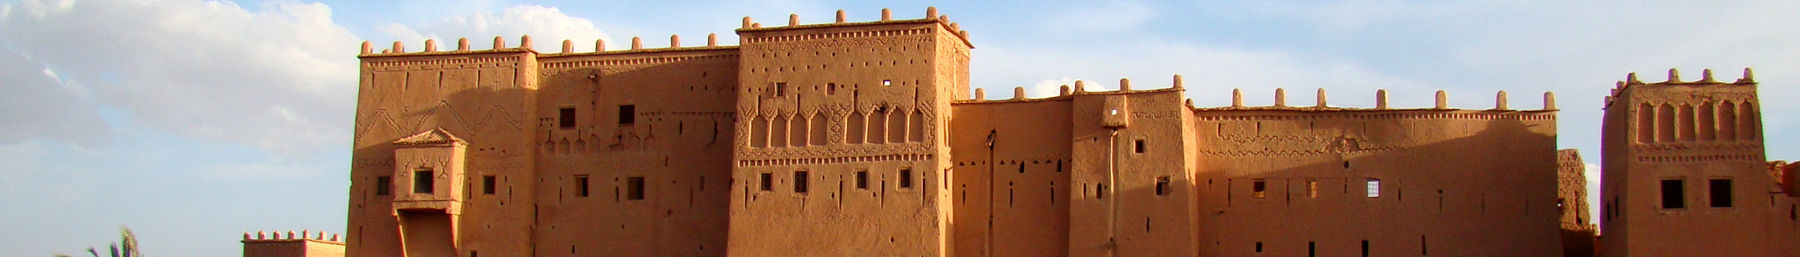 The Kasbah Taourirt on Avenue Mohammed V in Ouarzazate just before sunset in April